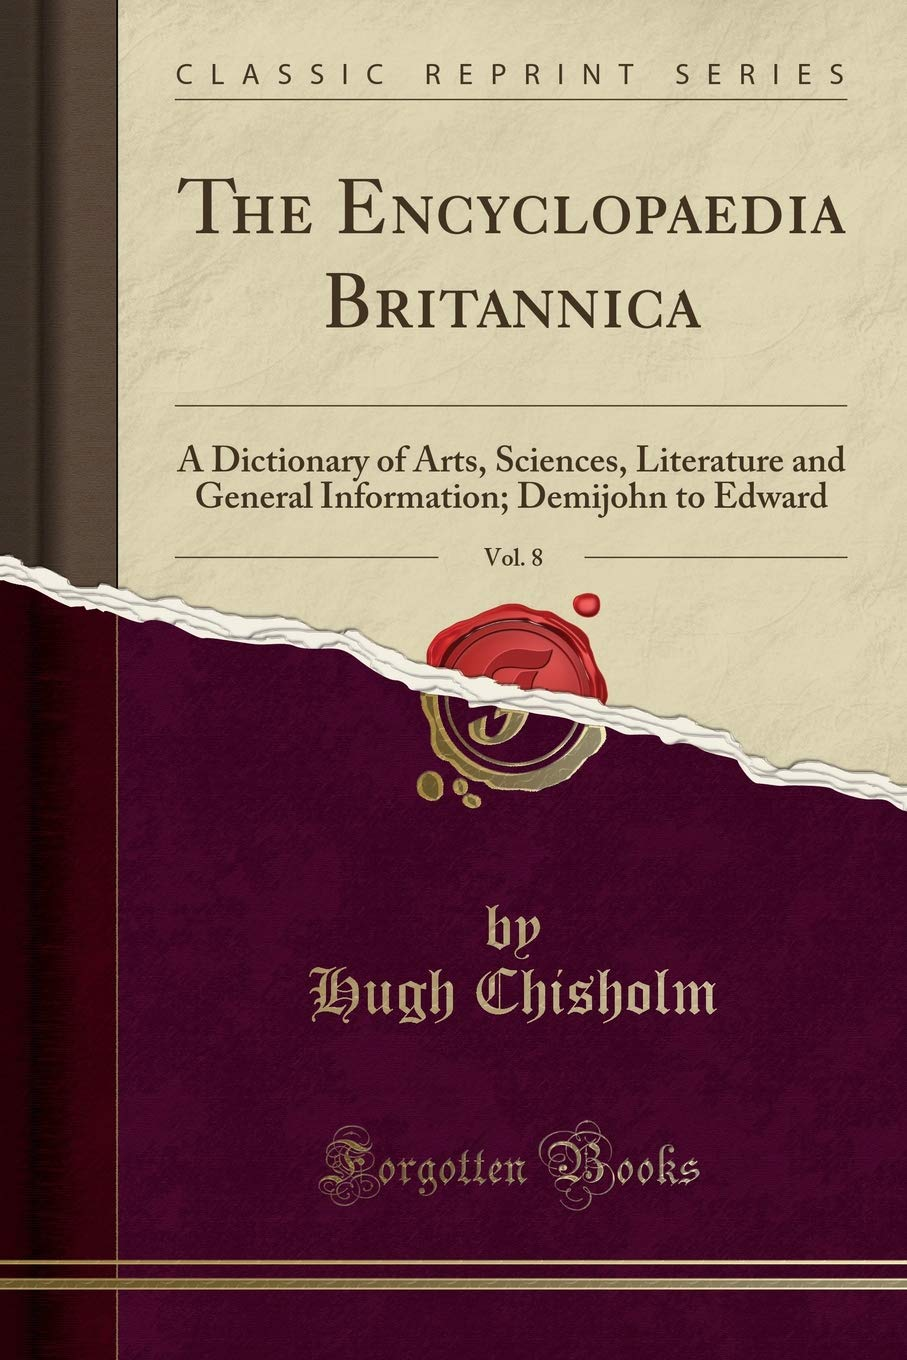 Read Online The Encyclopaedia Britannica, Vol. 8: A Dictionary of Arts, Sciences, Literature and General Information; Demijohn to Edward (Classic Reprint) PDF